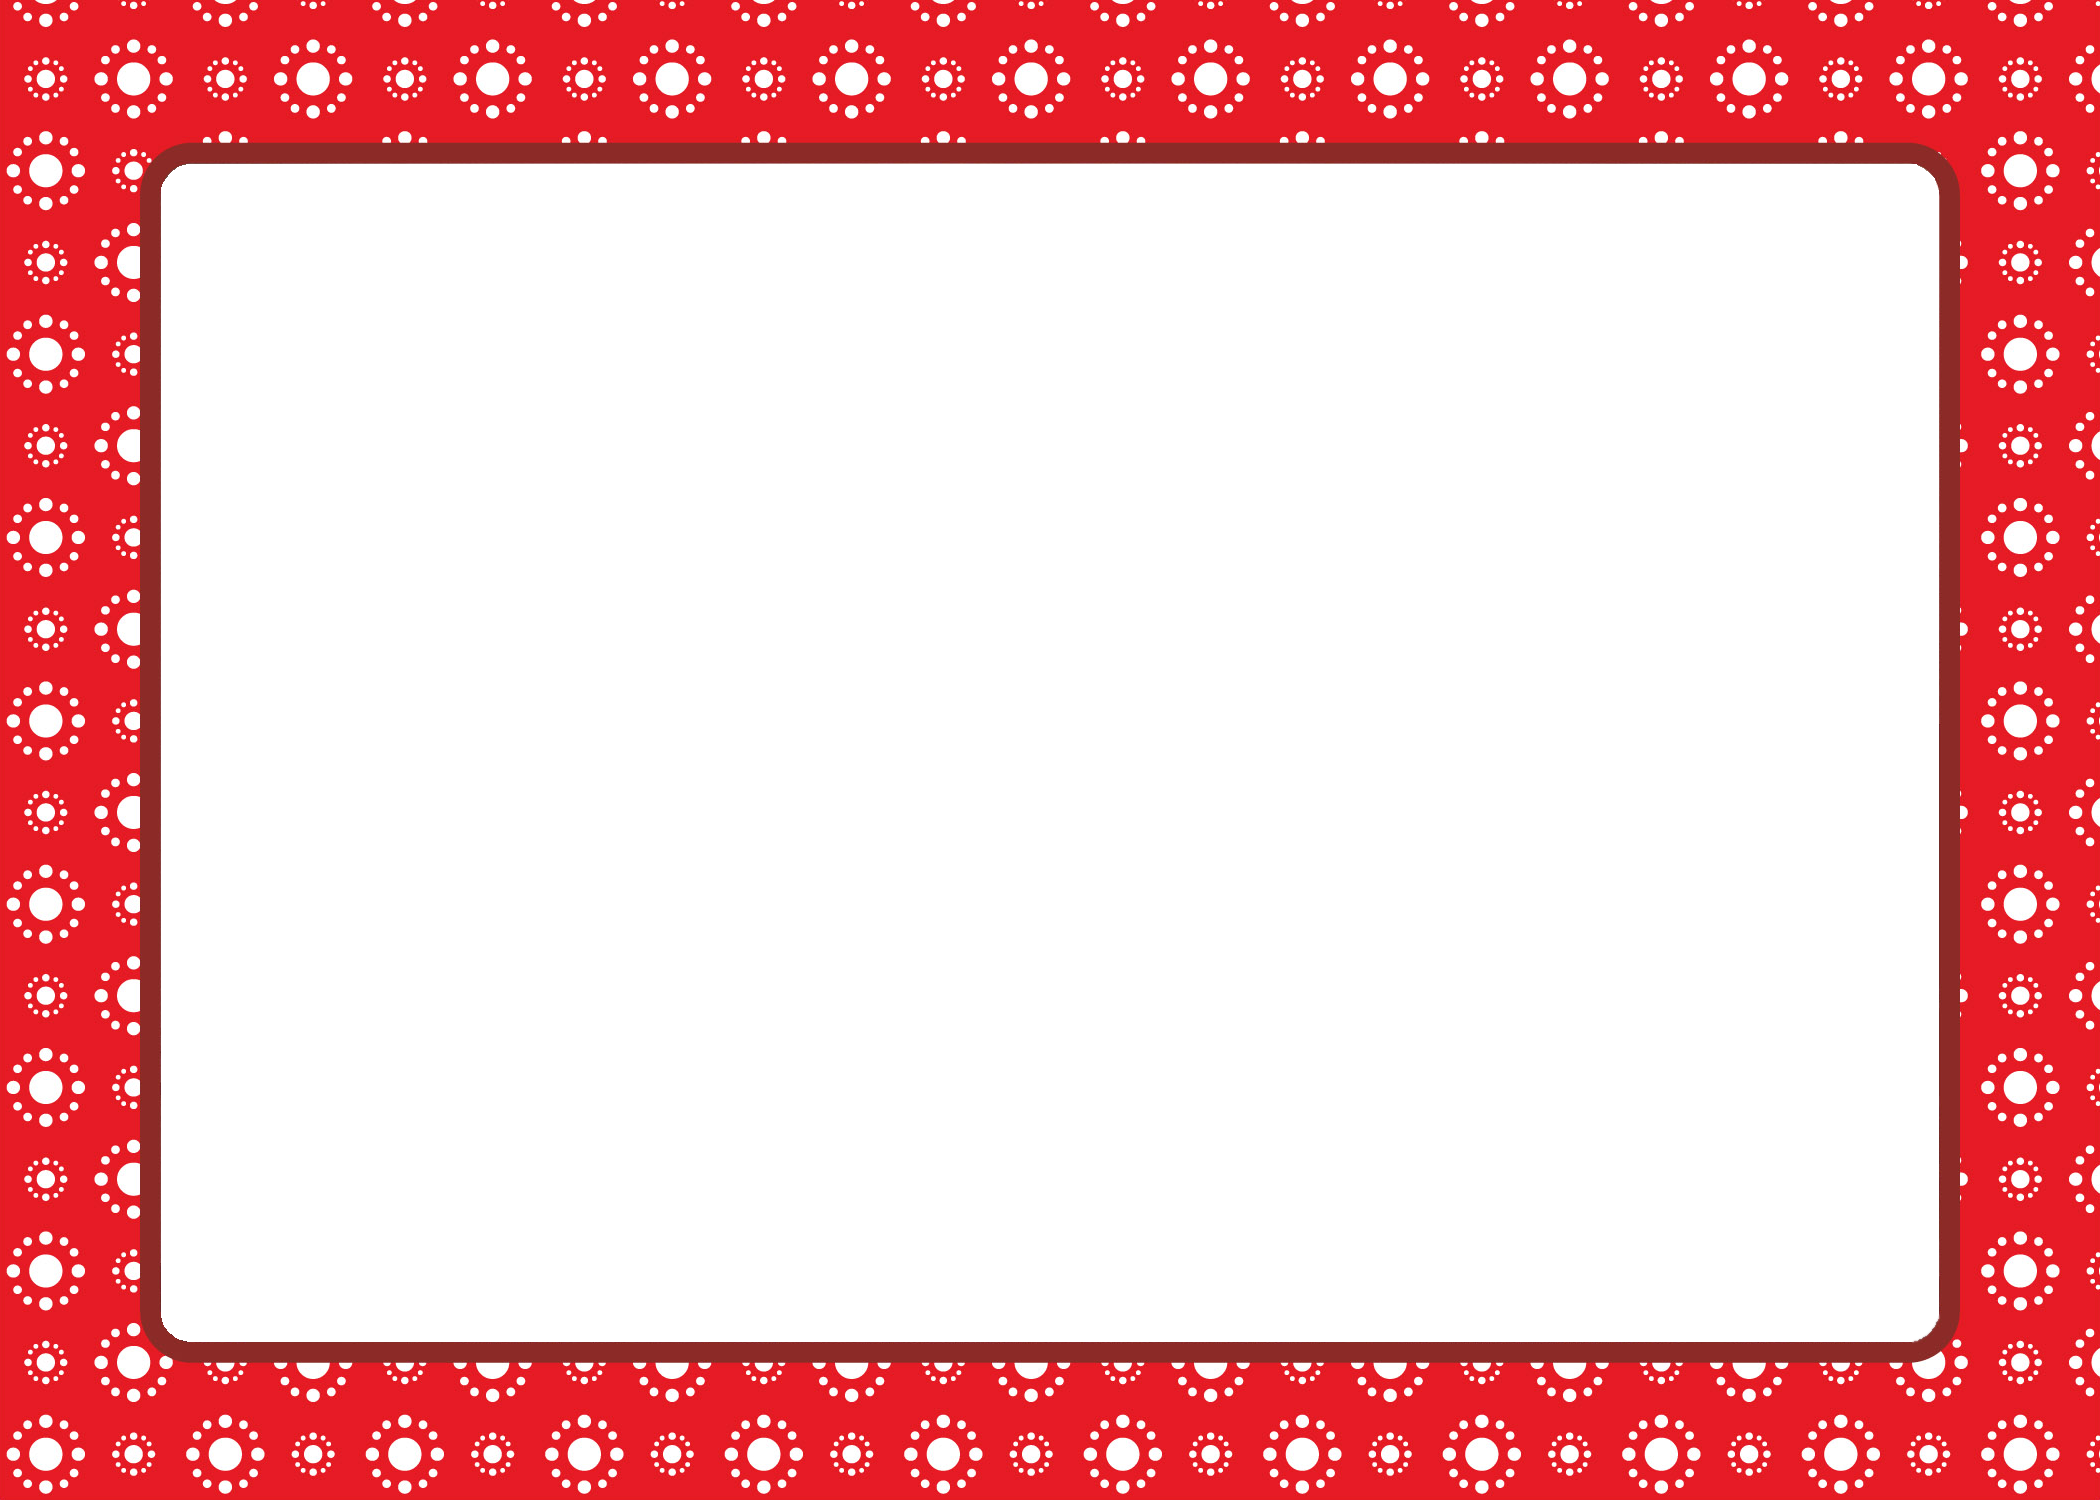 Christmas Card Border.Christmas Card Frame Png Christmas Card Frame Png